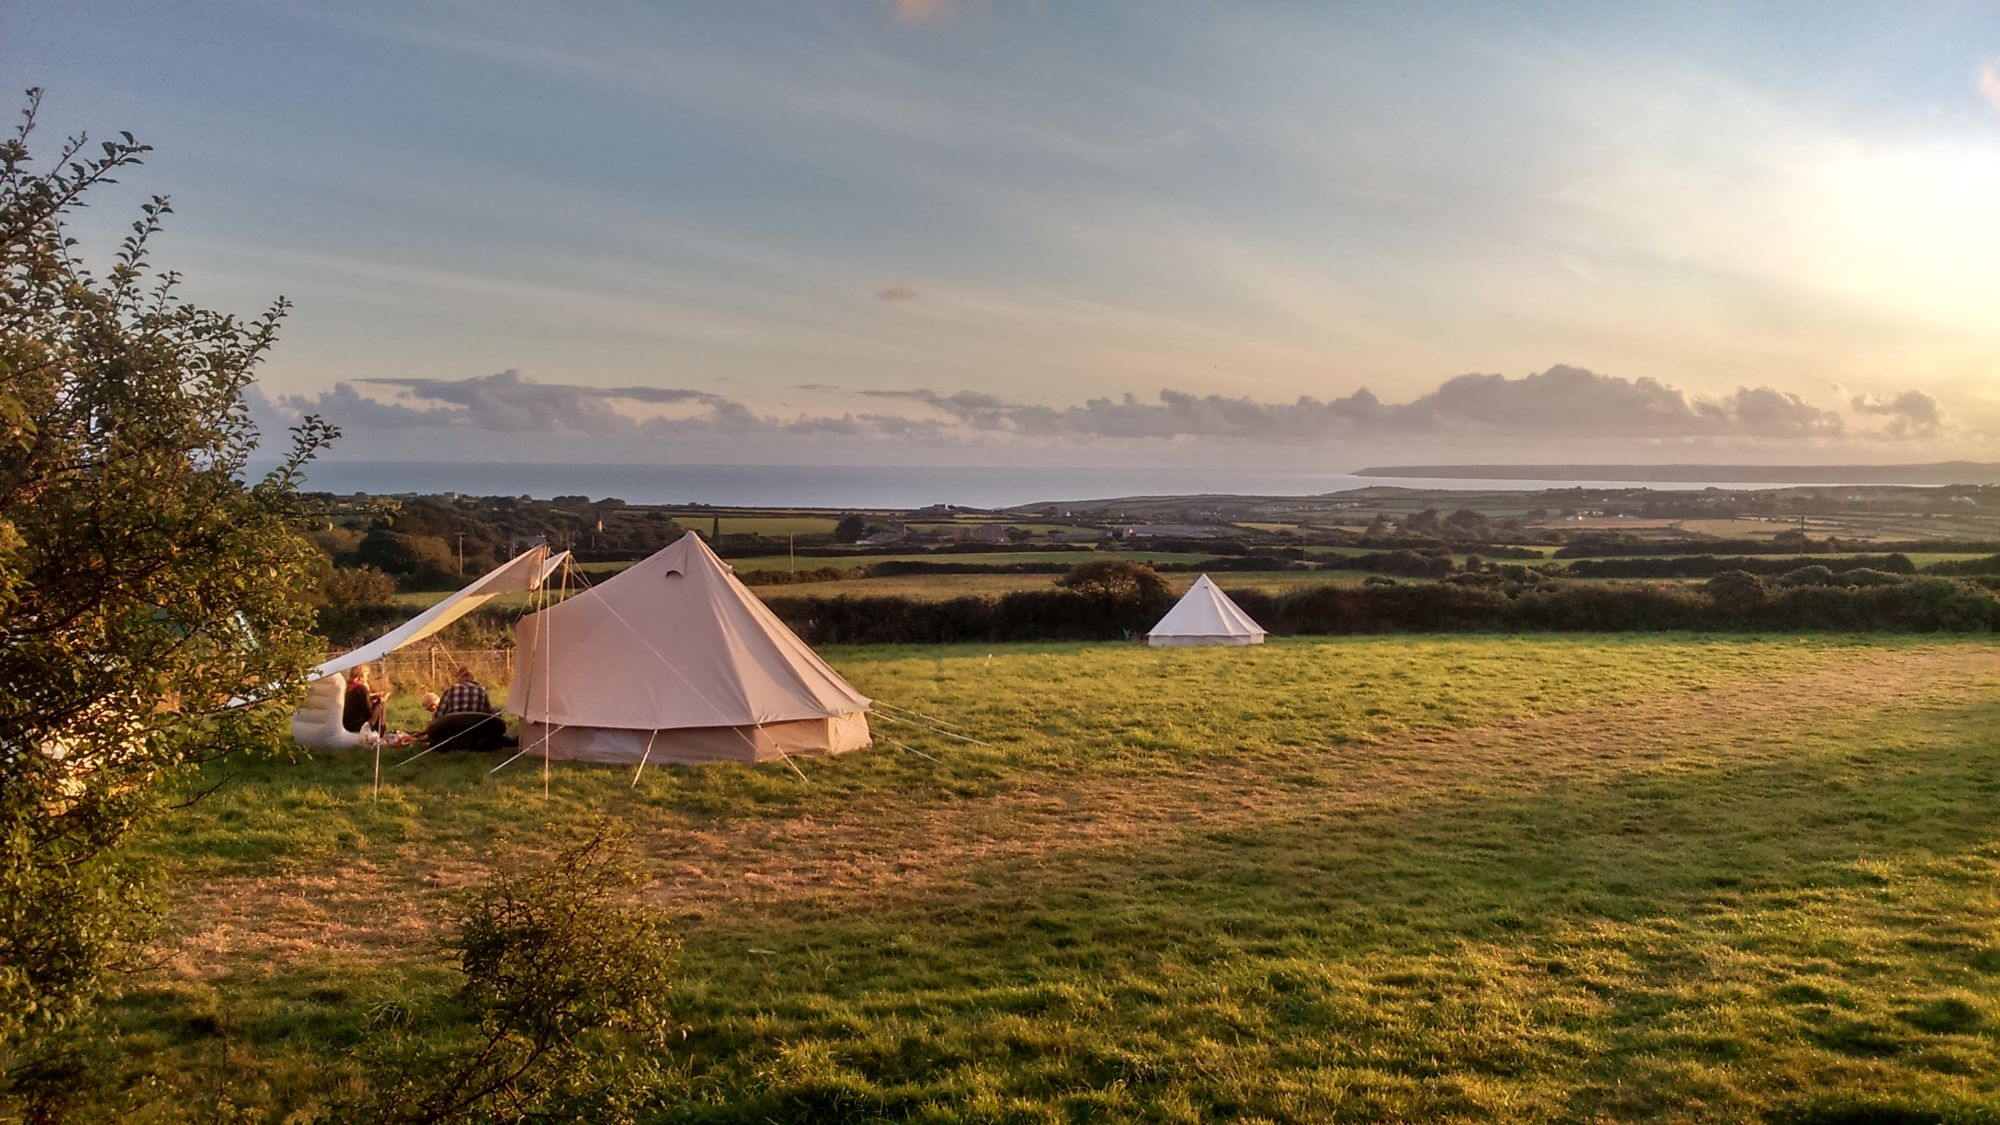 A rustic 28 day pop-up site with excellent views and a wild location on the Cornish coast.